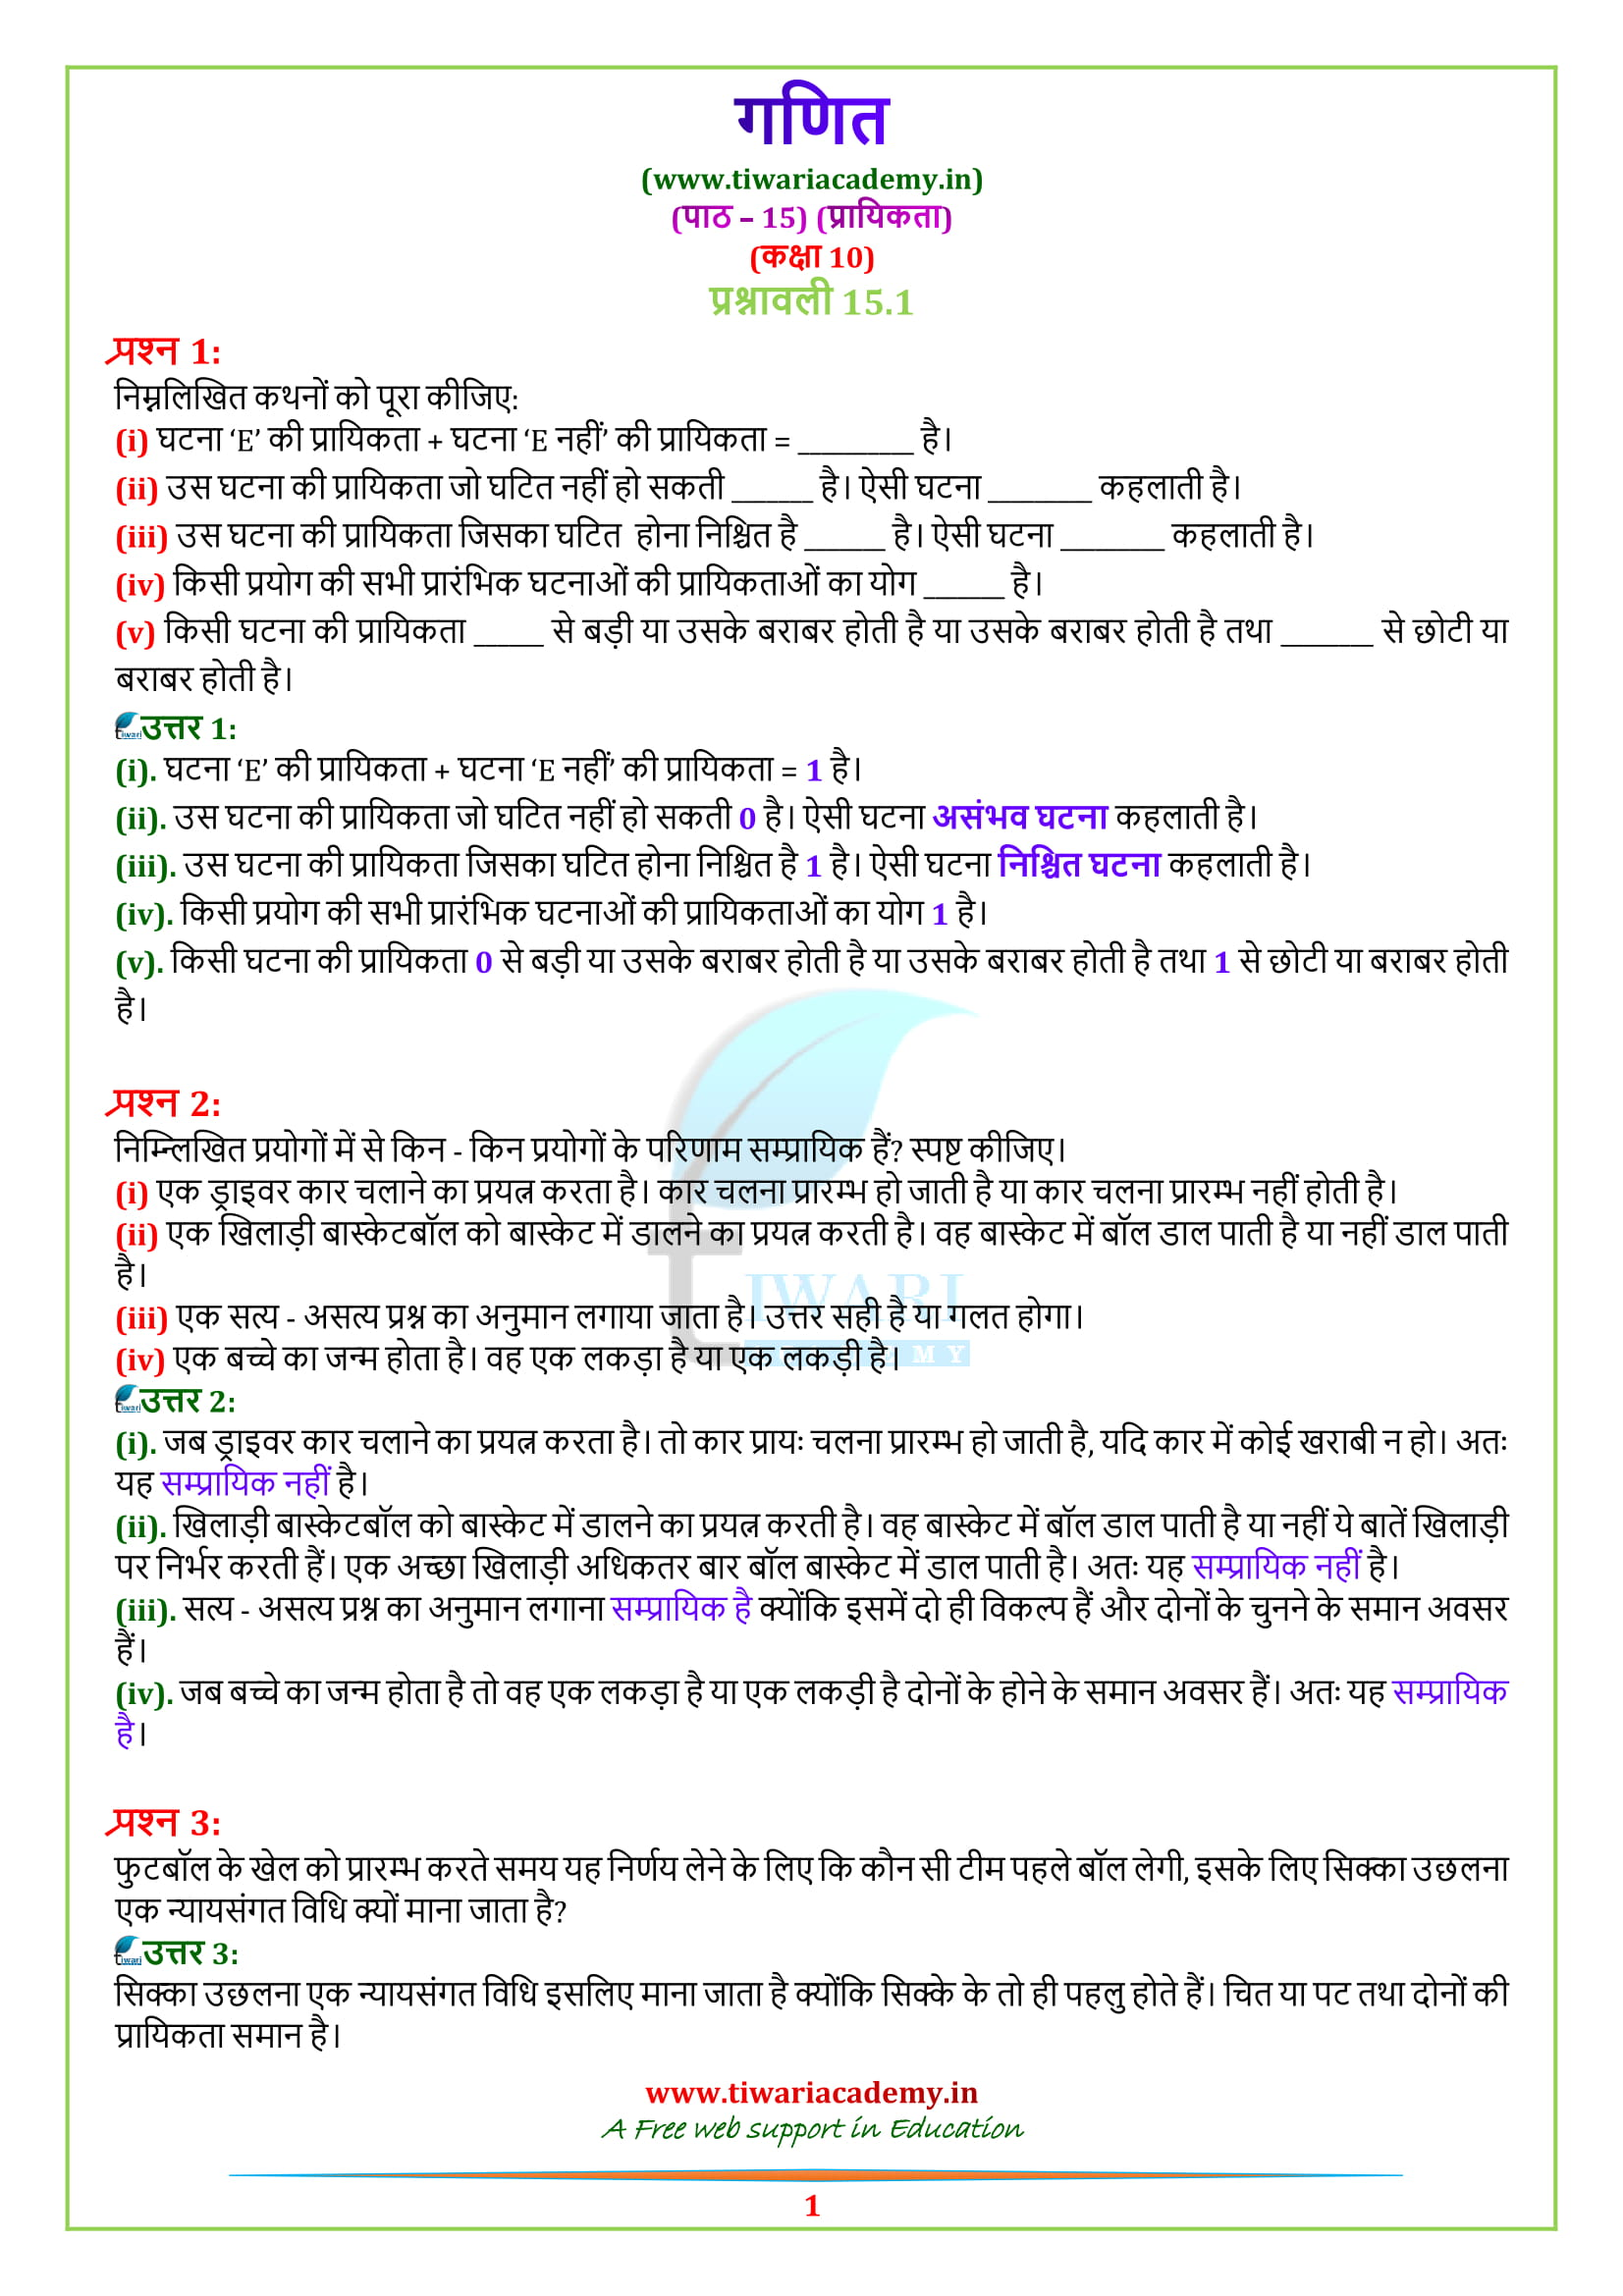 Class 10 Maths Exercise 15.1 solutions in hindi